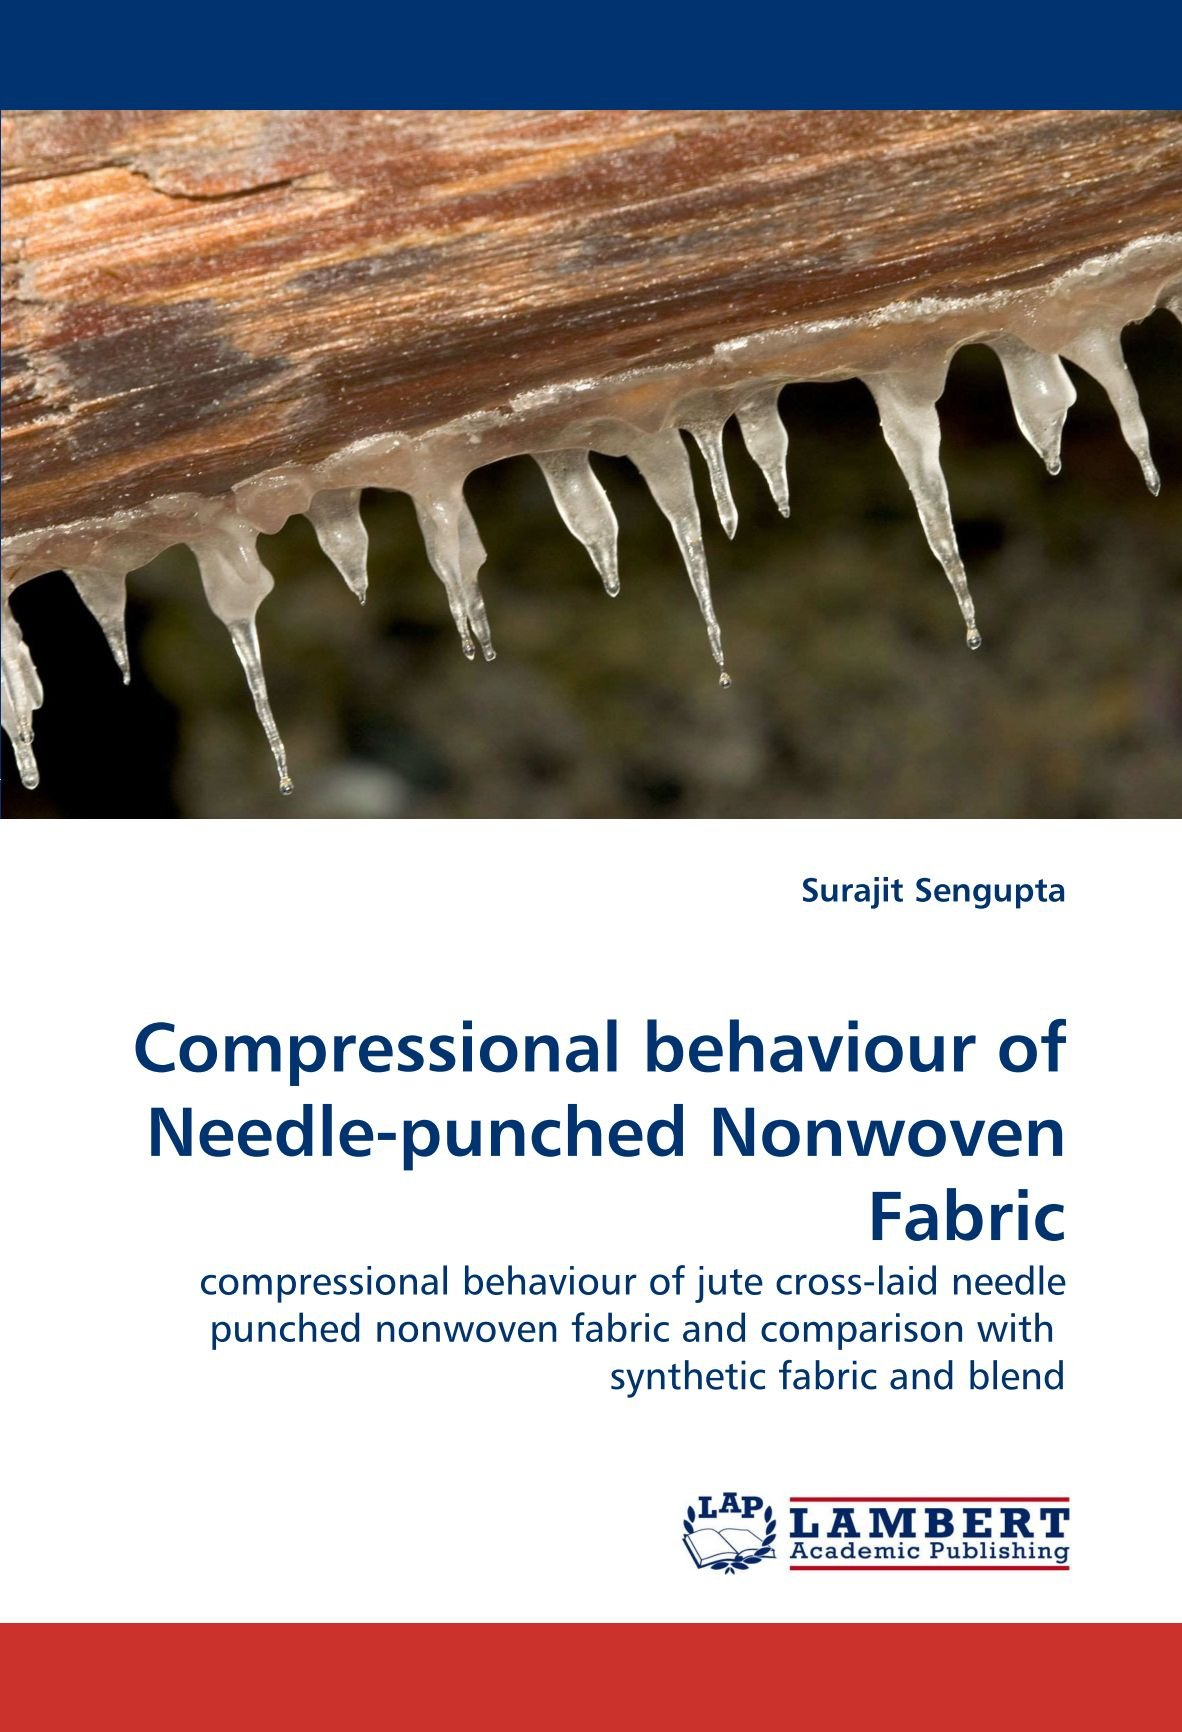 Compressional behaviour of Needle-punched Nonwoven Fabric: compressional behaviour of jute cross-laid needle punched nonwoven fabric and comparison with  synthetic fabric and blend ebook